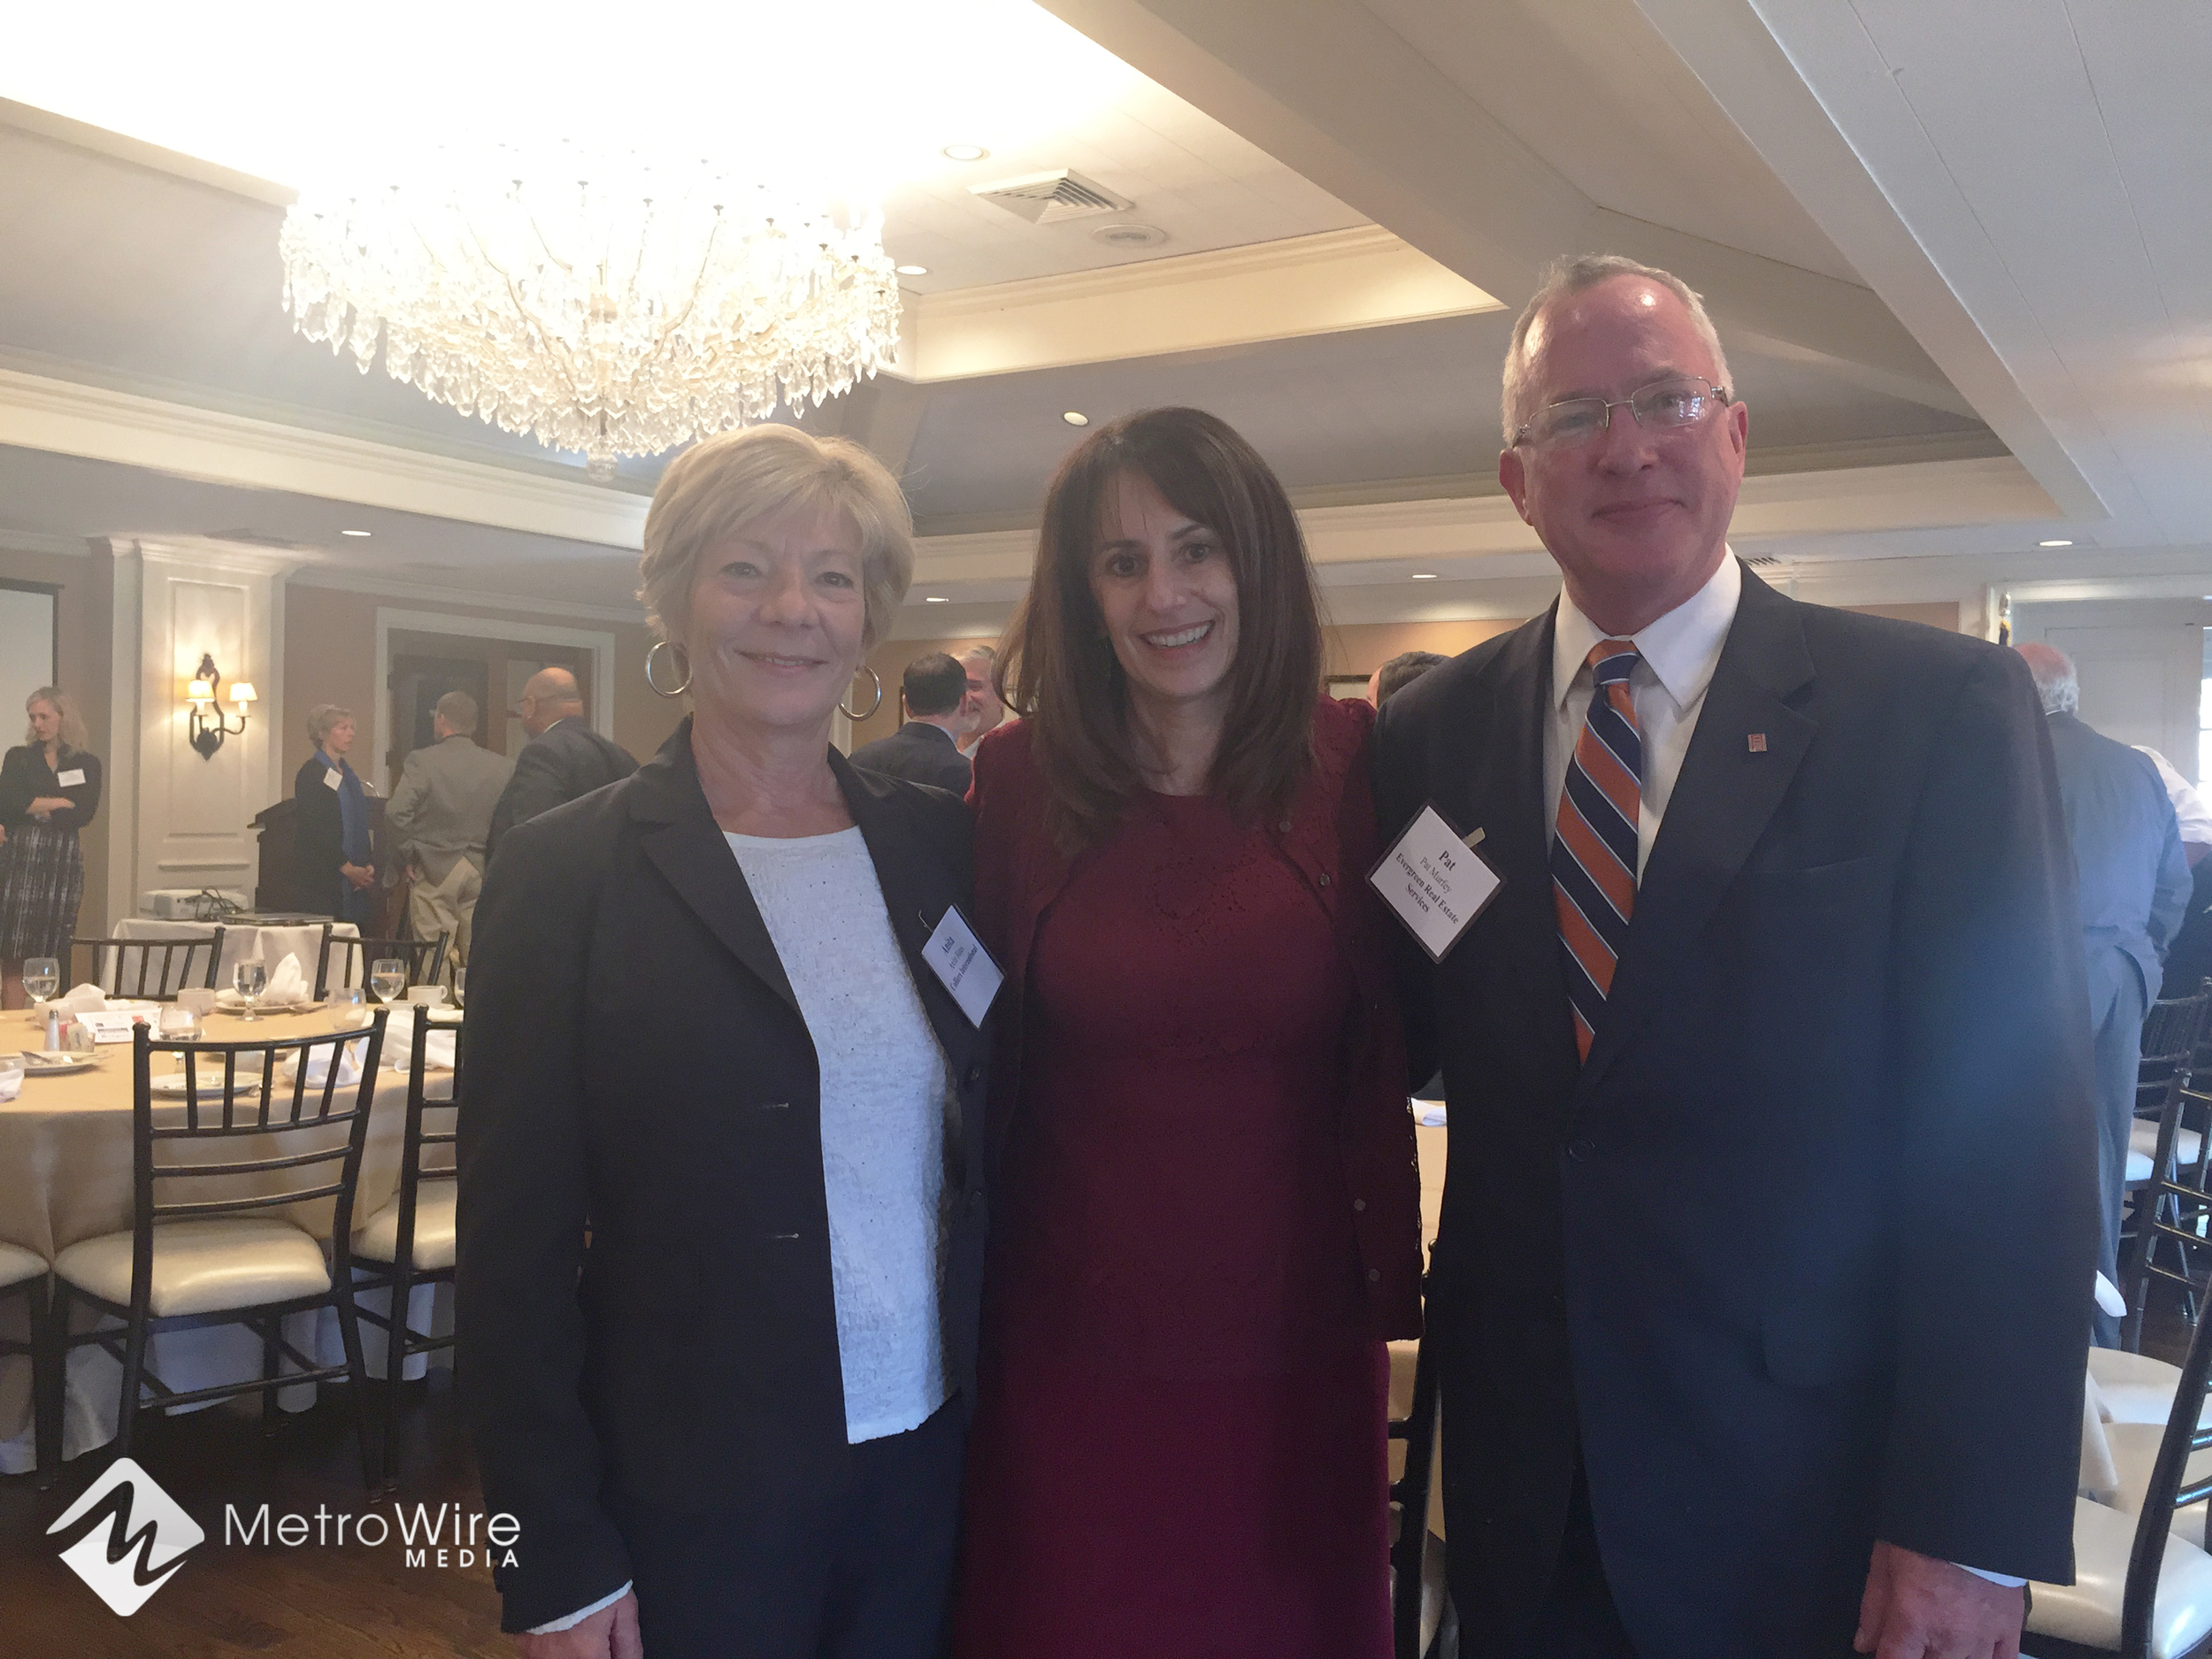 Ora Reynolds, president and CEO of Hunt Midwest, visits with CCIM Kansas City on Friday morning along with Anita Bates, Colliers (left) and Pat Murfey, Evergreen Real Estate Services.